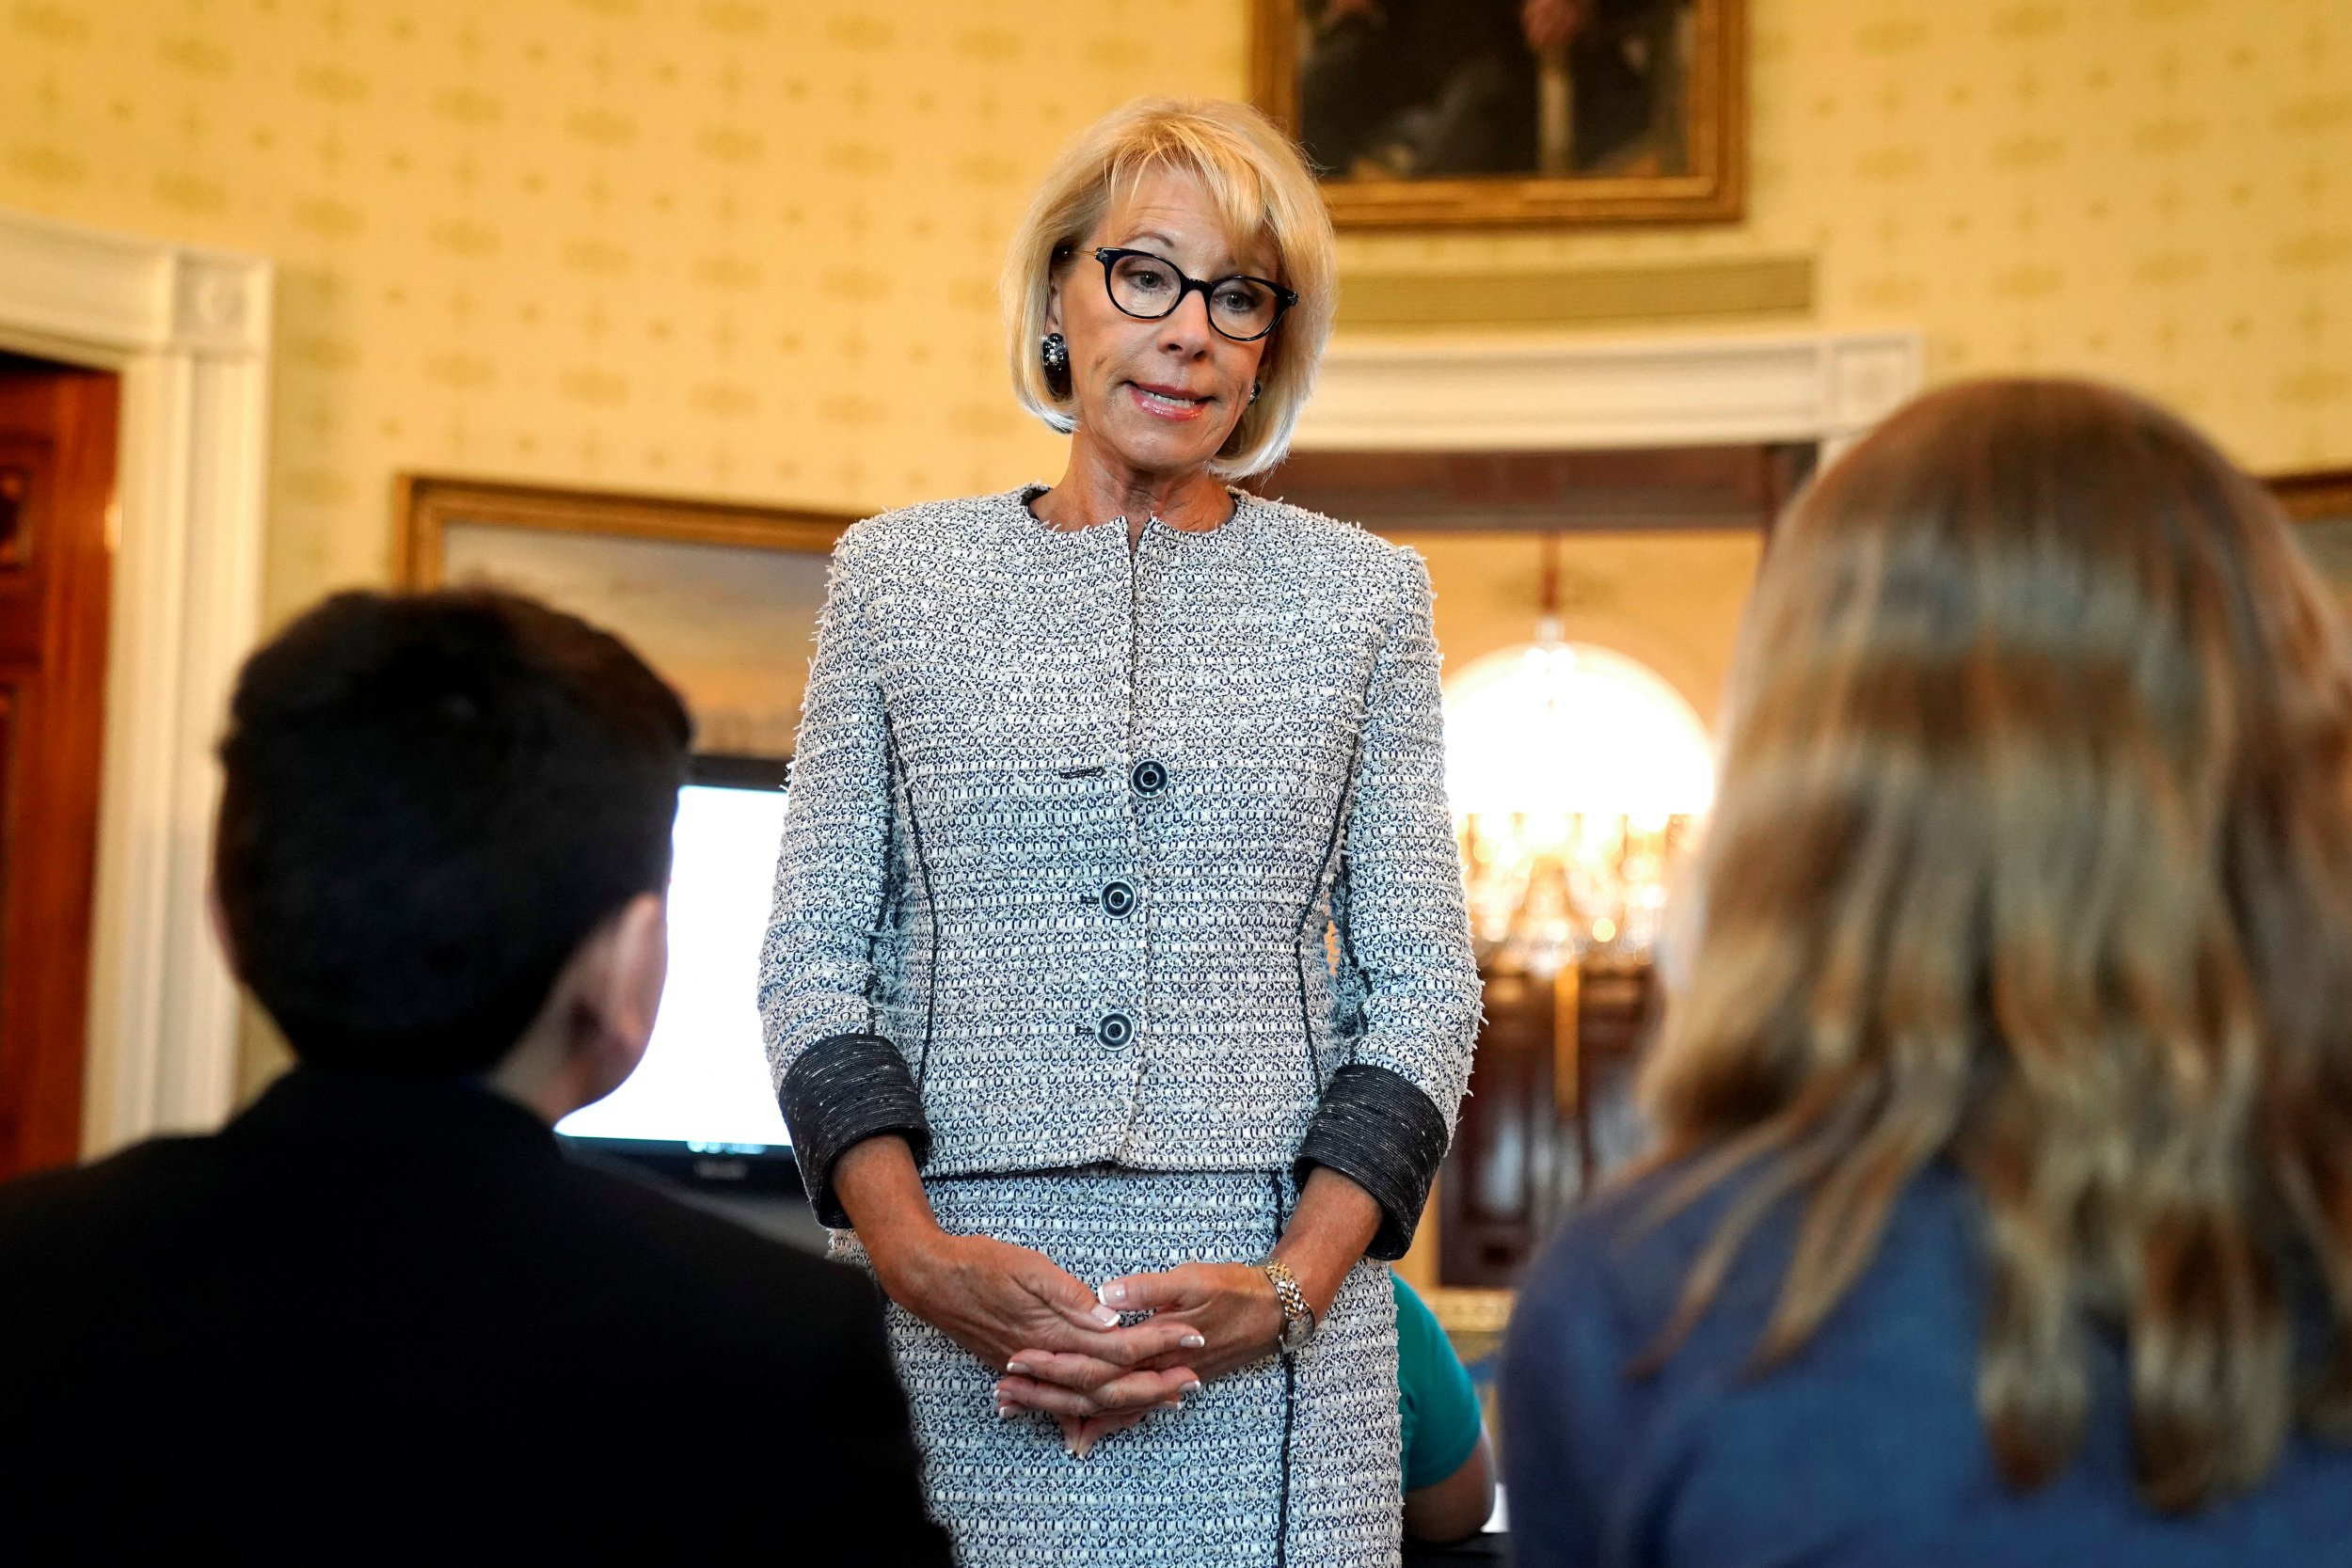 The DeVos family yacht that made the news doesn't fly under the American flag